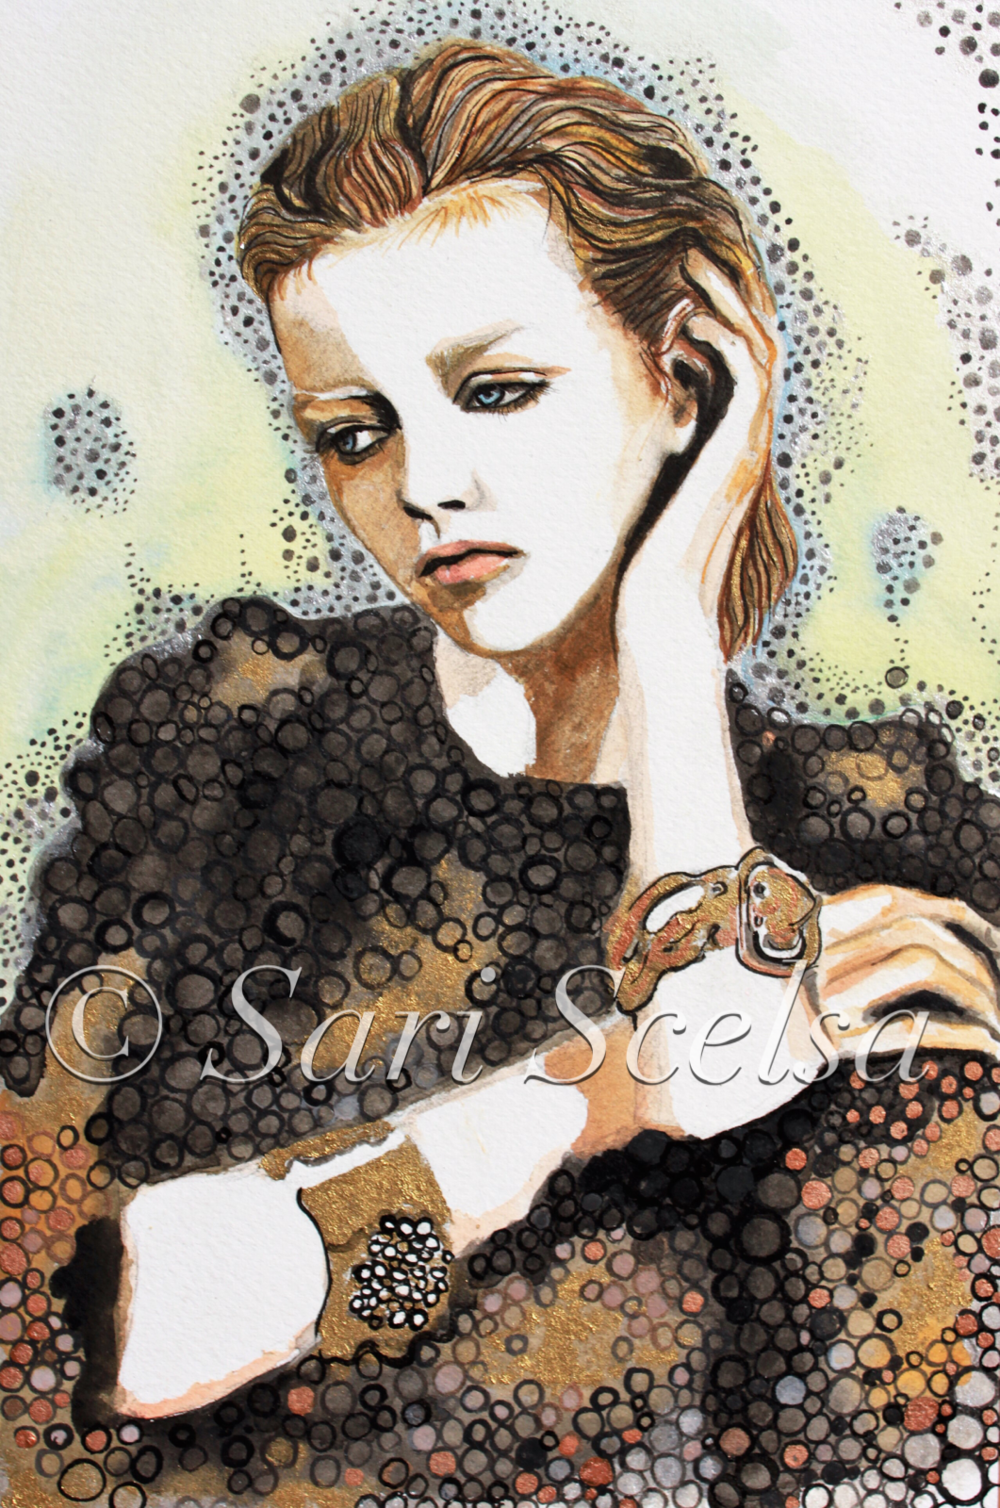 """Ti Penso"" - I Think of You - Watercolour with gold and black ink - Original Sold but Prints available. check out Prints for Sale section for more infohttps://sariscelsa.com/prints-for-sale/"